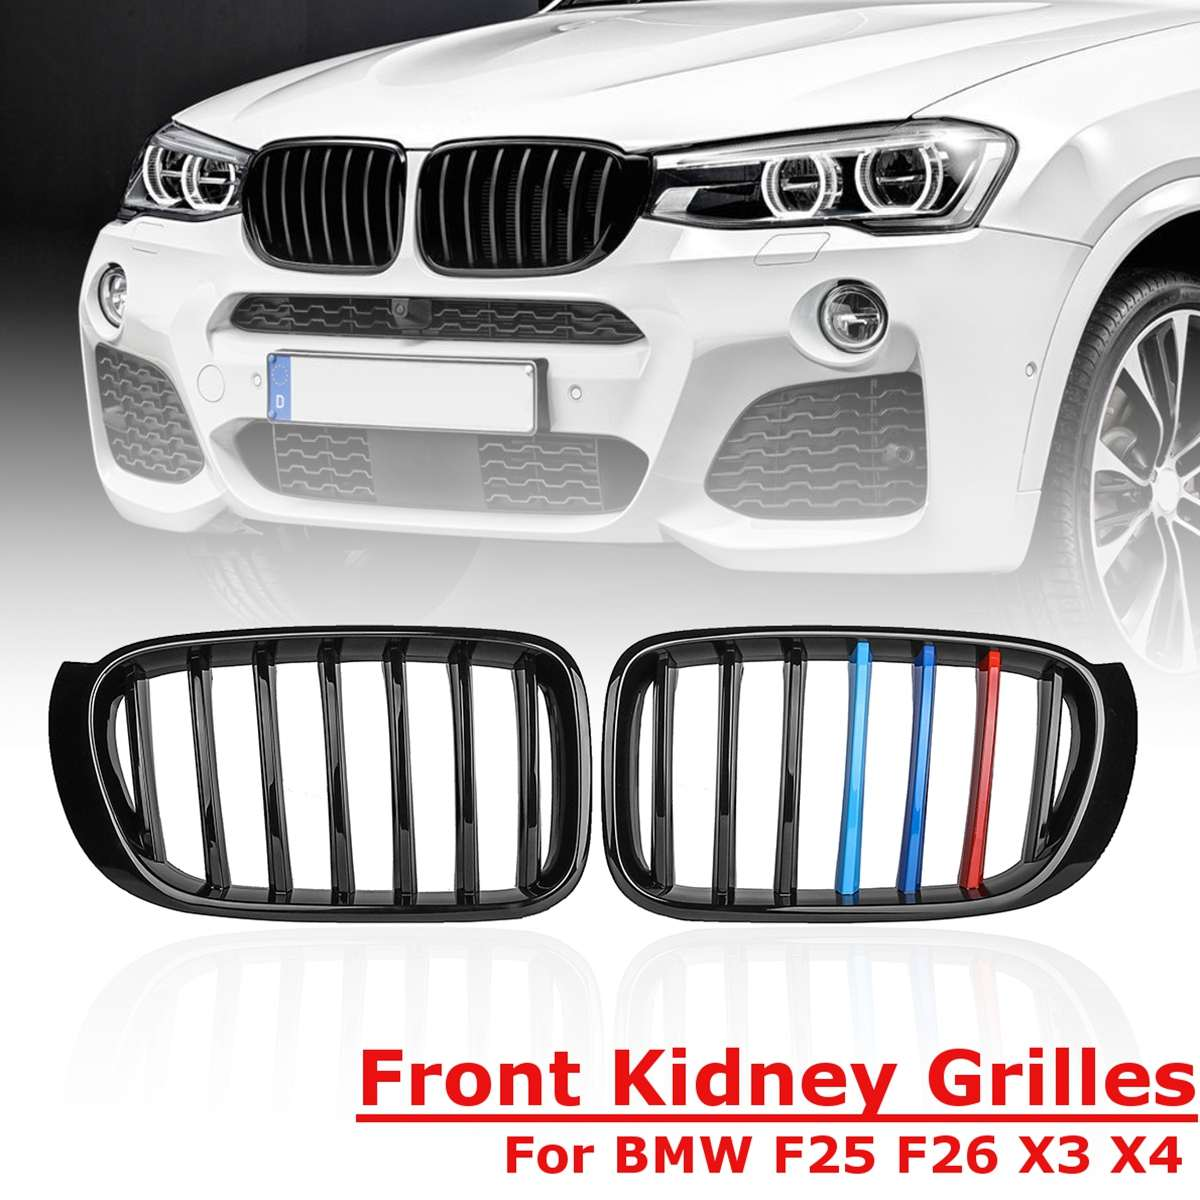 For Front Bumper Sport Kidney Grill Grille Gloss Black Replacement Racing 1 Pair 3 Colors for BMW X3 F25 F26 2014 2015 2016 2017For Front Bumper Sport Kidney Grill Grille Gloss Black Replacement Racing 1 Pair 3 Colors for BMW X3 F25 F26 2014 2015 2016 2017